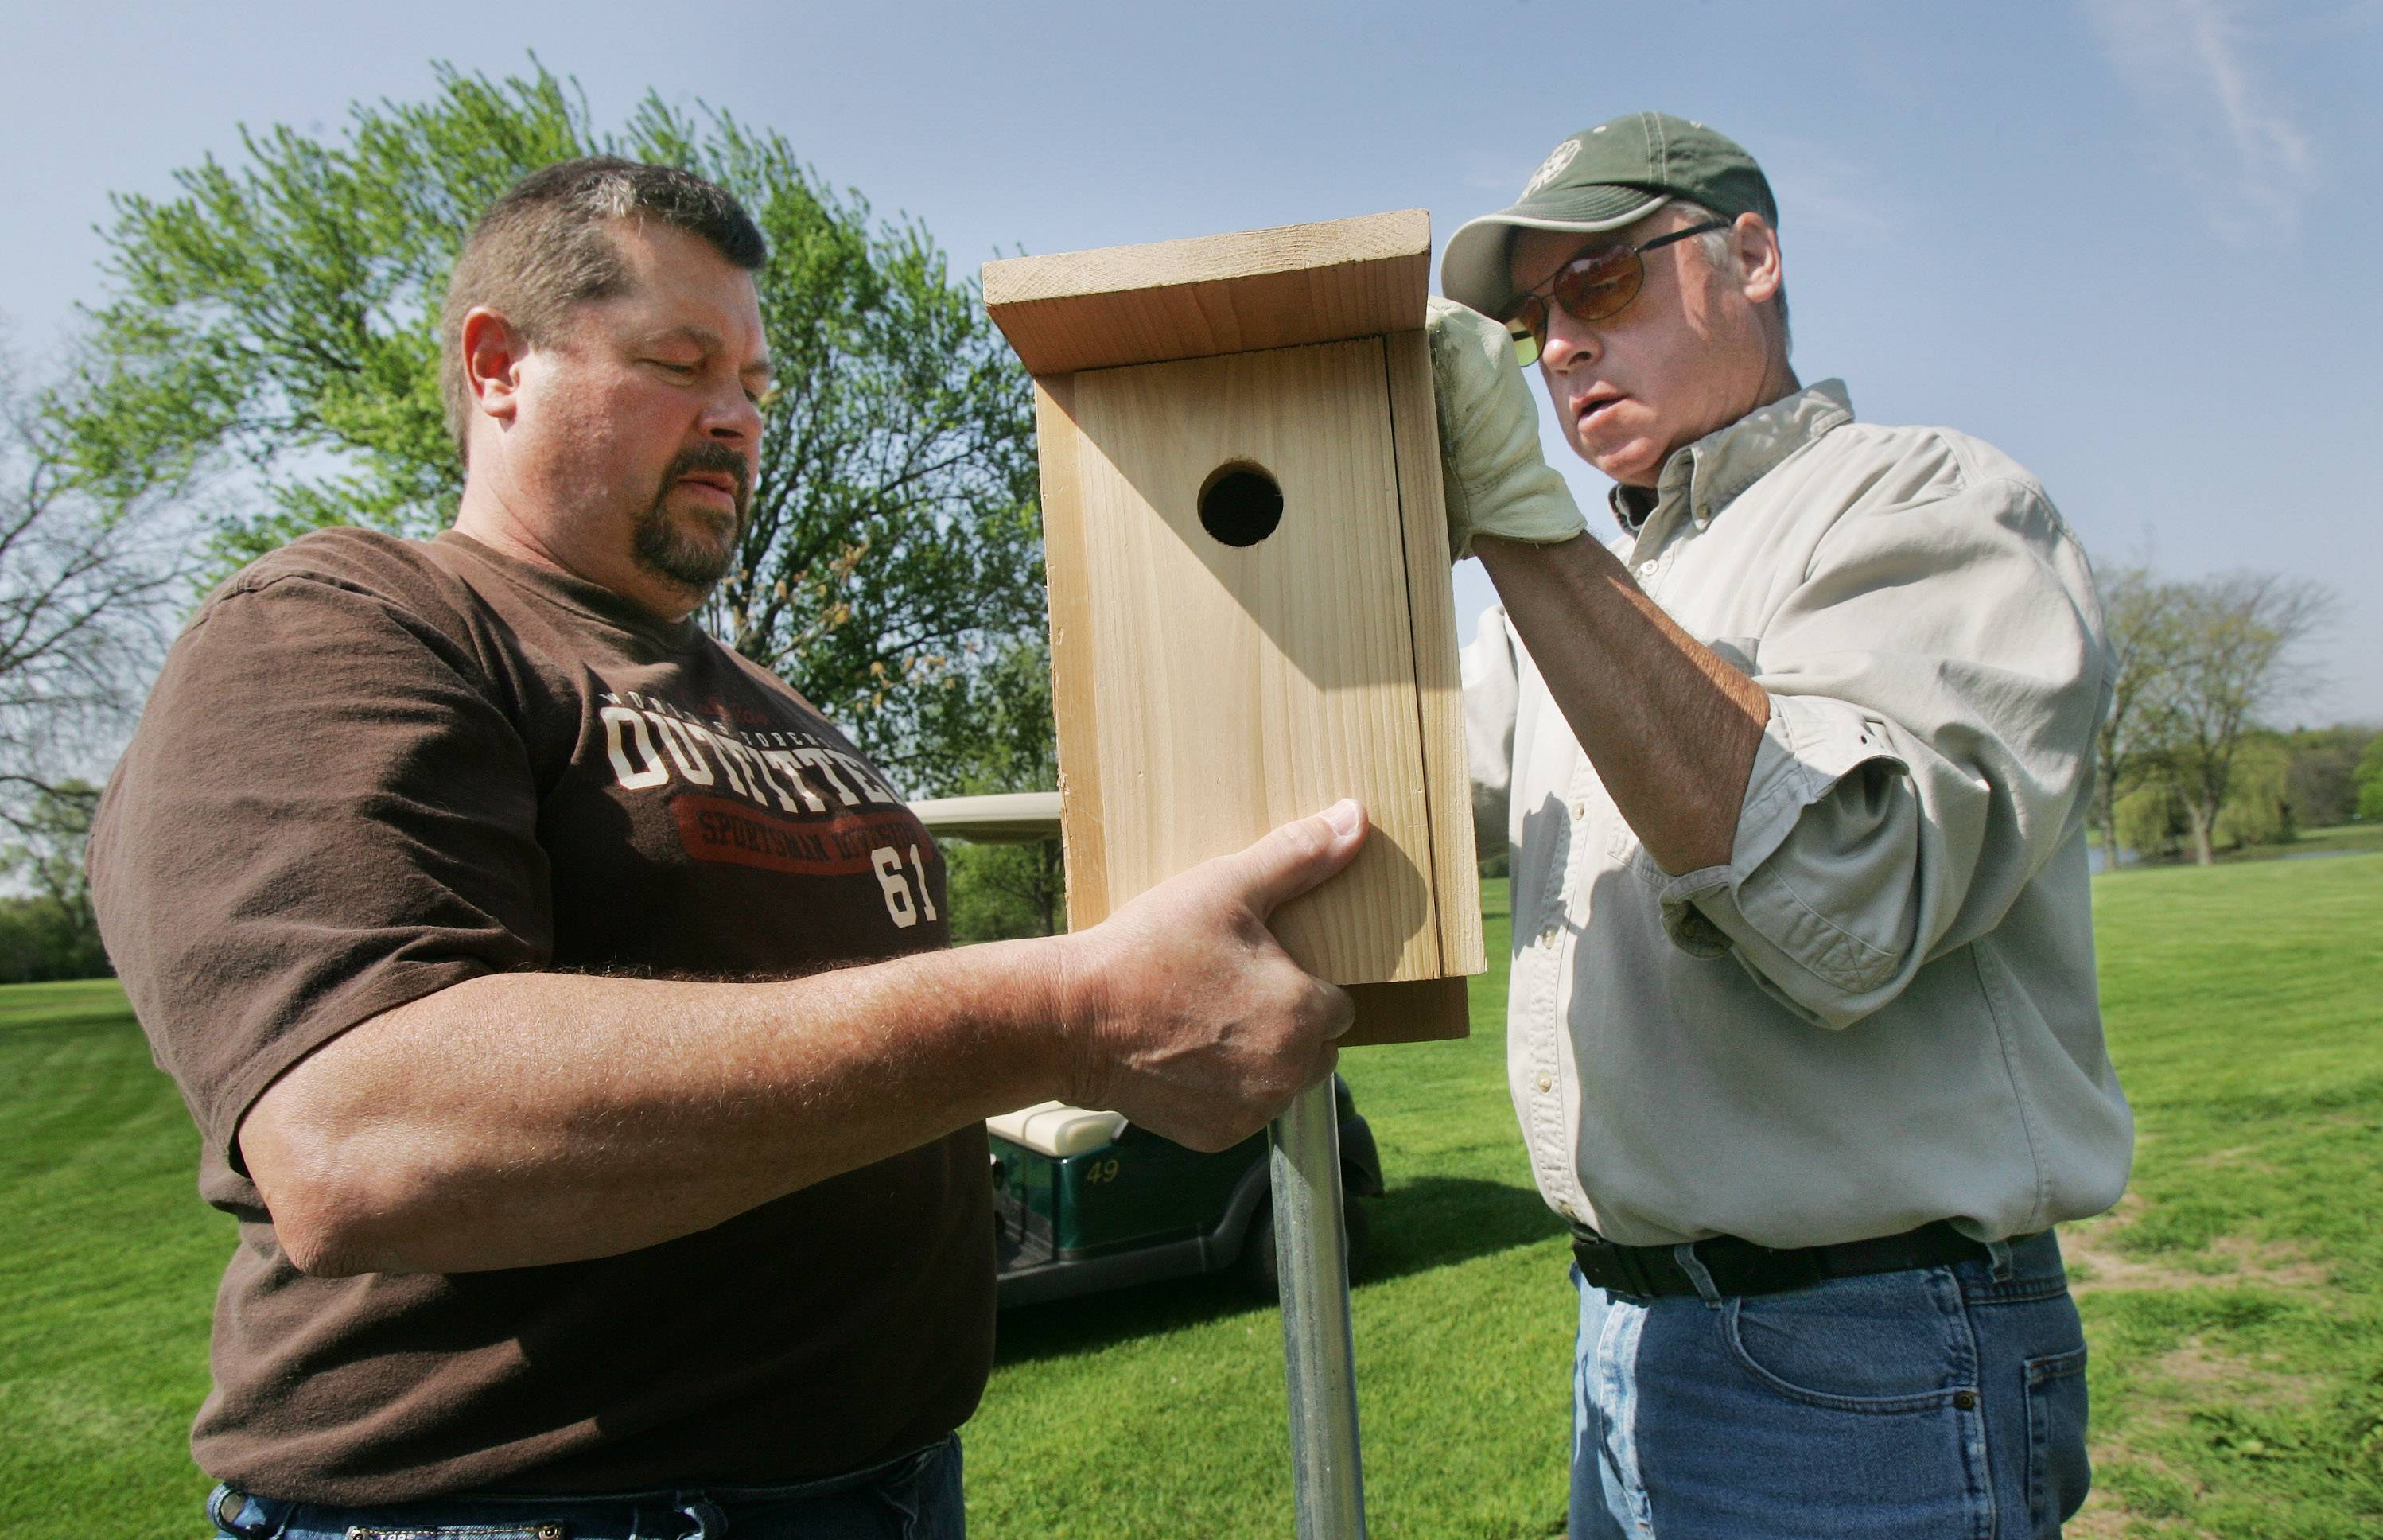 Volunteer coordinator Jack Nowak of Grayslake, right, and his brother, Bill, install a new bluebird box at Brae Loch Golf Course in Grayslake. The brothers monitor the houses keeping track of the bluebirds and their eggs.